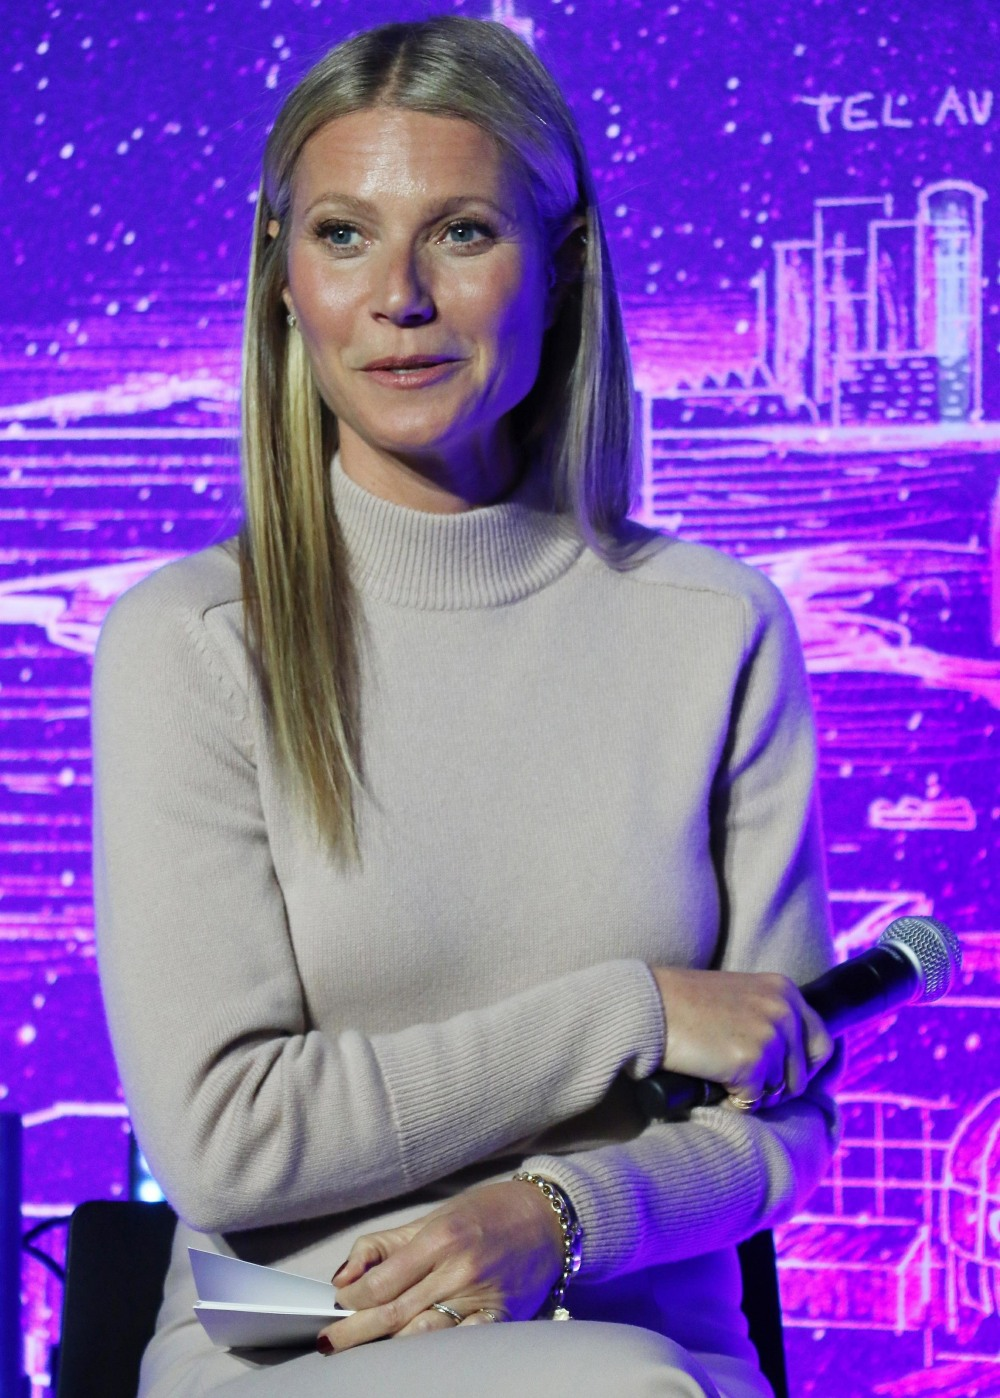 Gwyneth Paltrow at the Grand opening of the JVP International Cyber Center